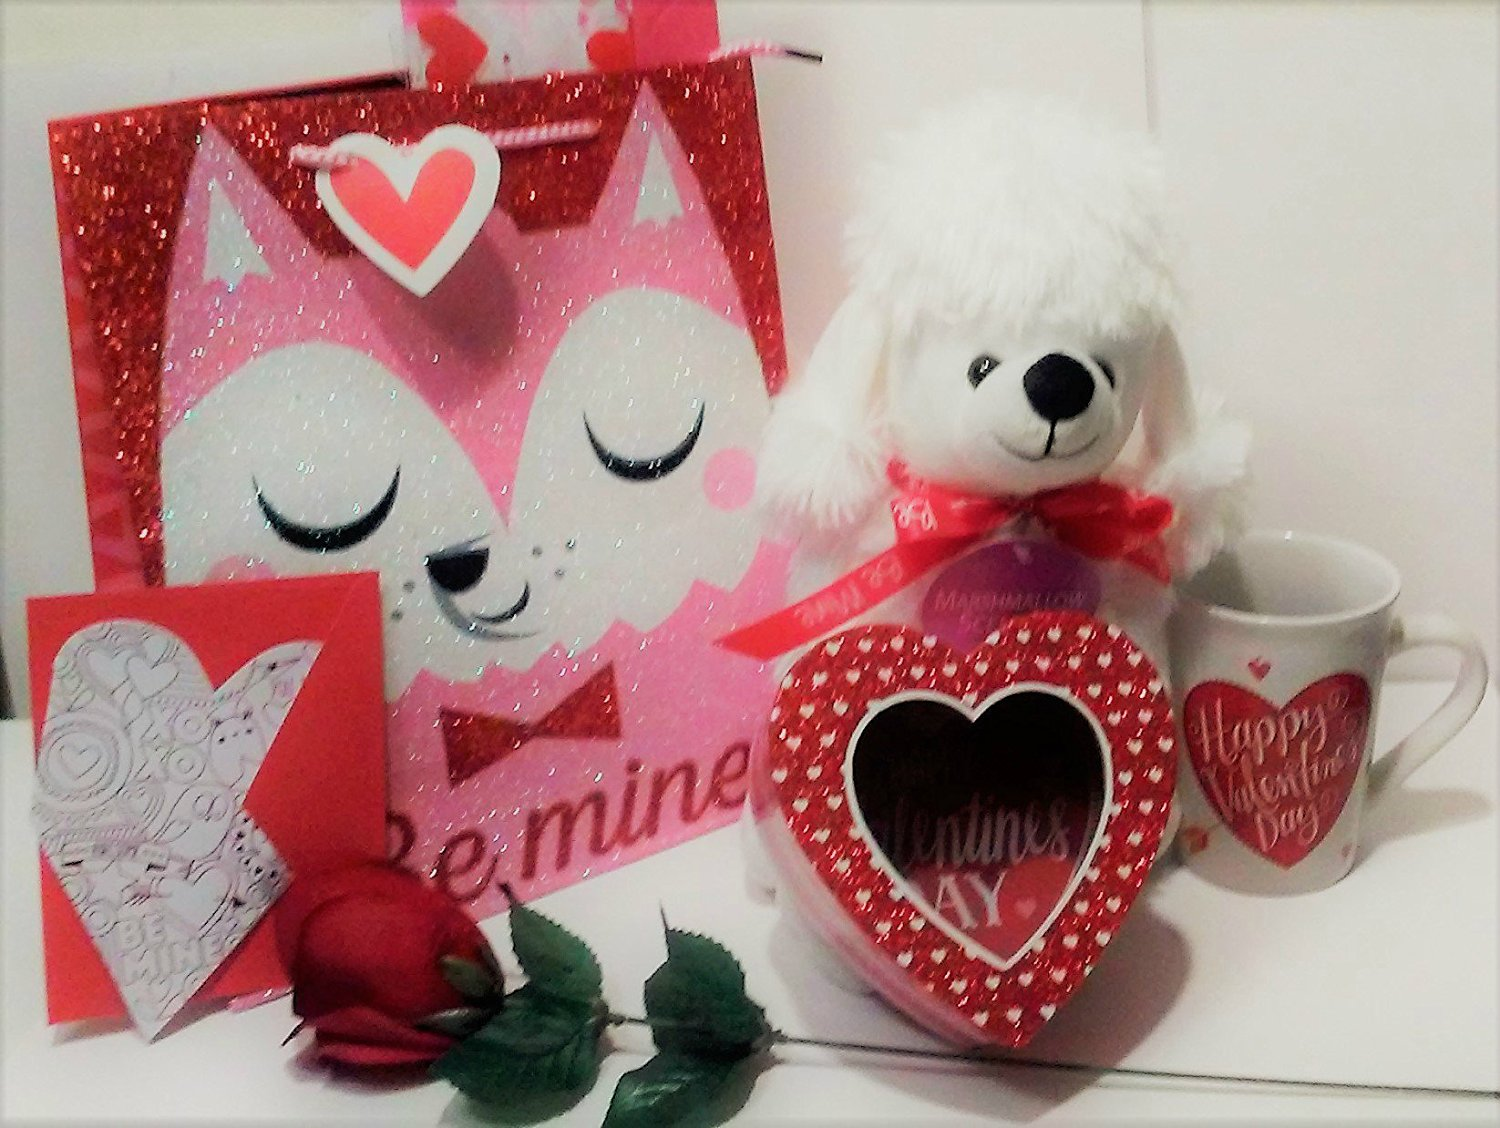 Buy Valentine Gift Set Complete With 11 Marshmallow Scented Plush Stuff Animal Dog Velvet Rose Valentine Mug Heart Shaped Gift Box Greeting Card Tissue Paper Glitter Gift Bag In Cheap Price On Alibaba Com